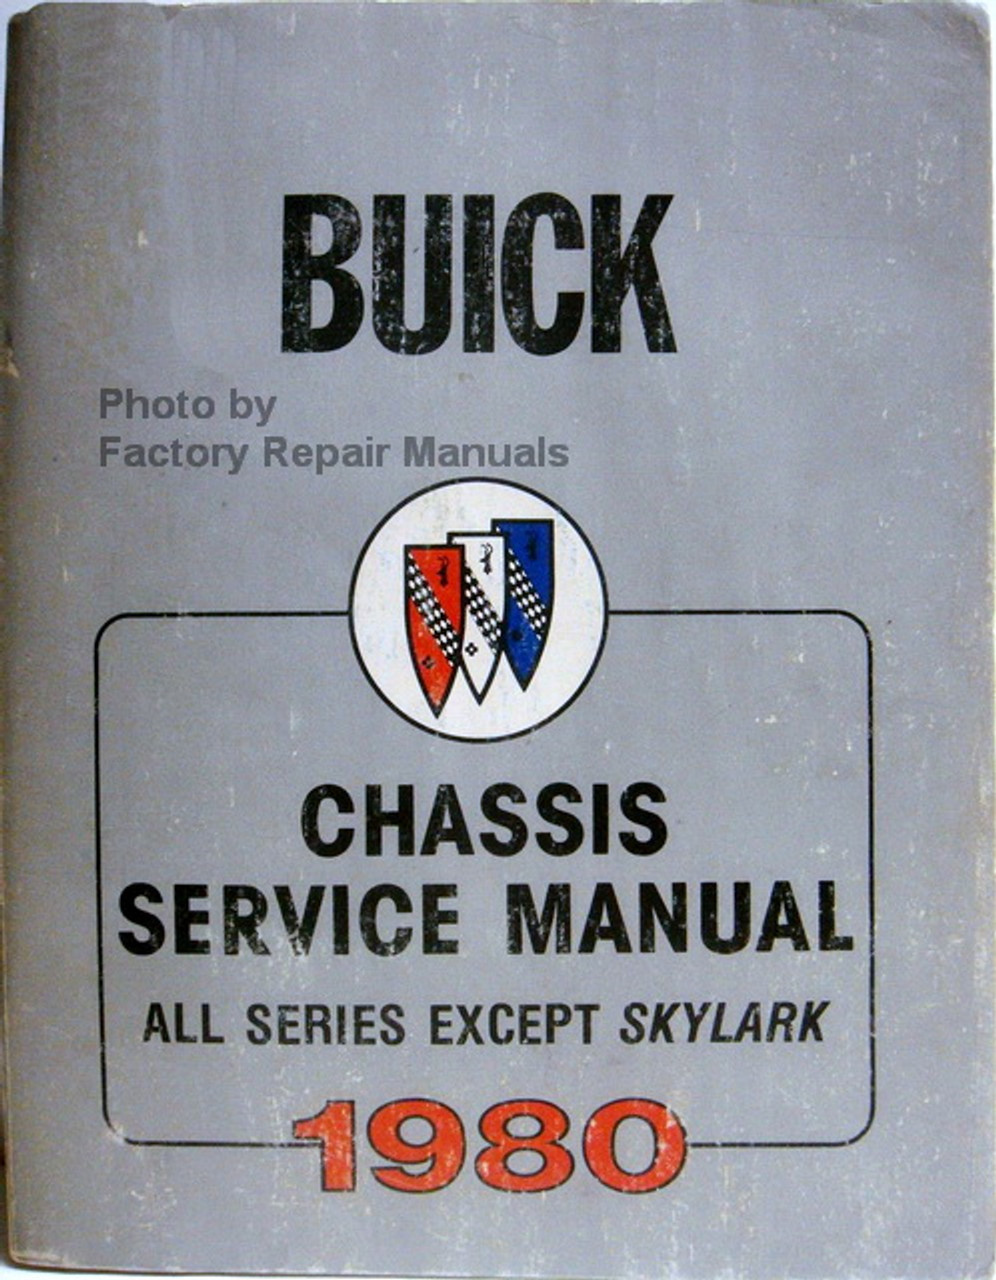 Electra LeSabre 80 1980 Buick Owners Owner/'s Manual